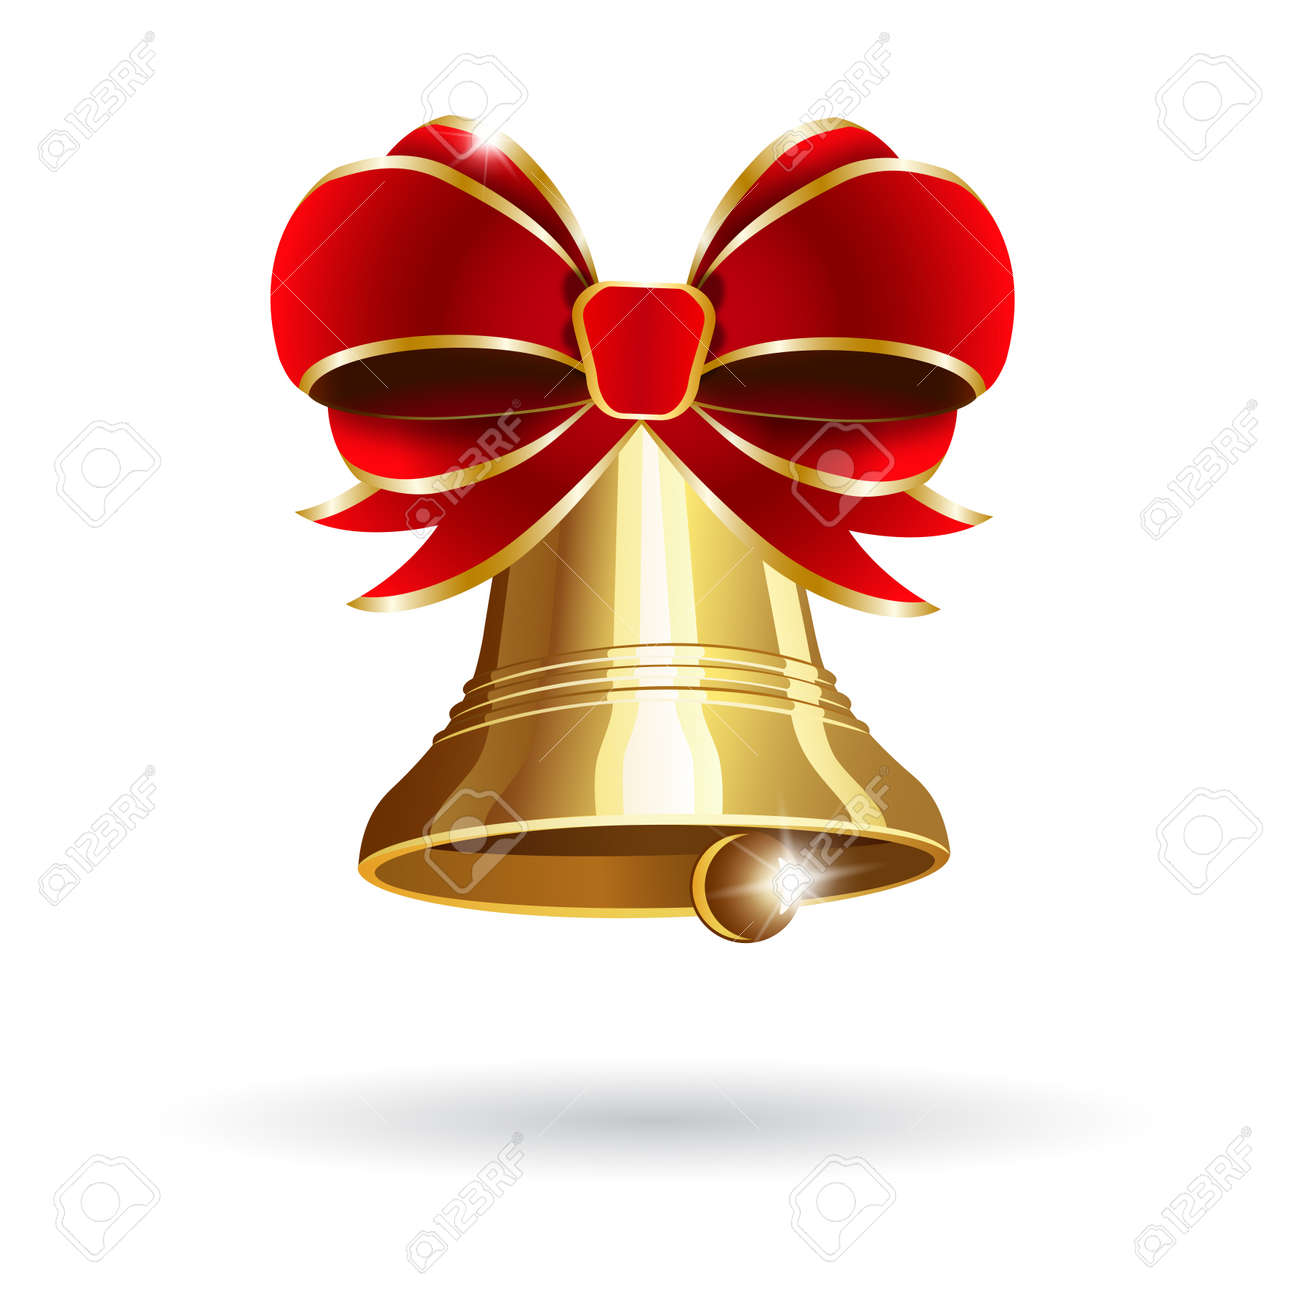 jingle bell with red bow on a white background vector illustration